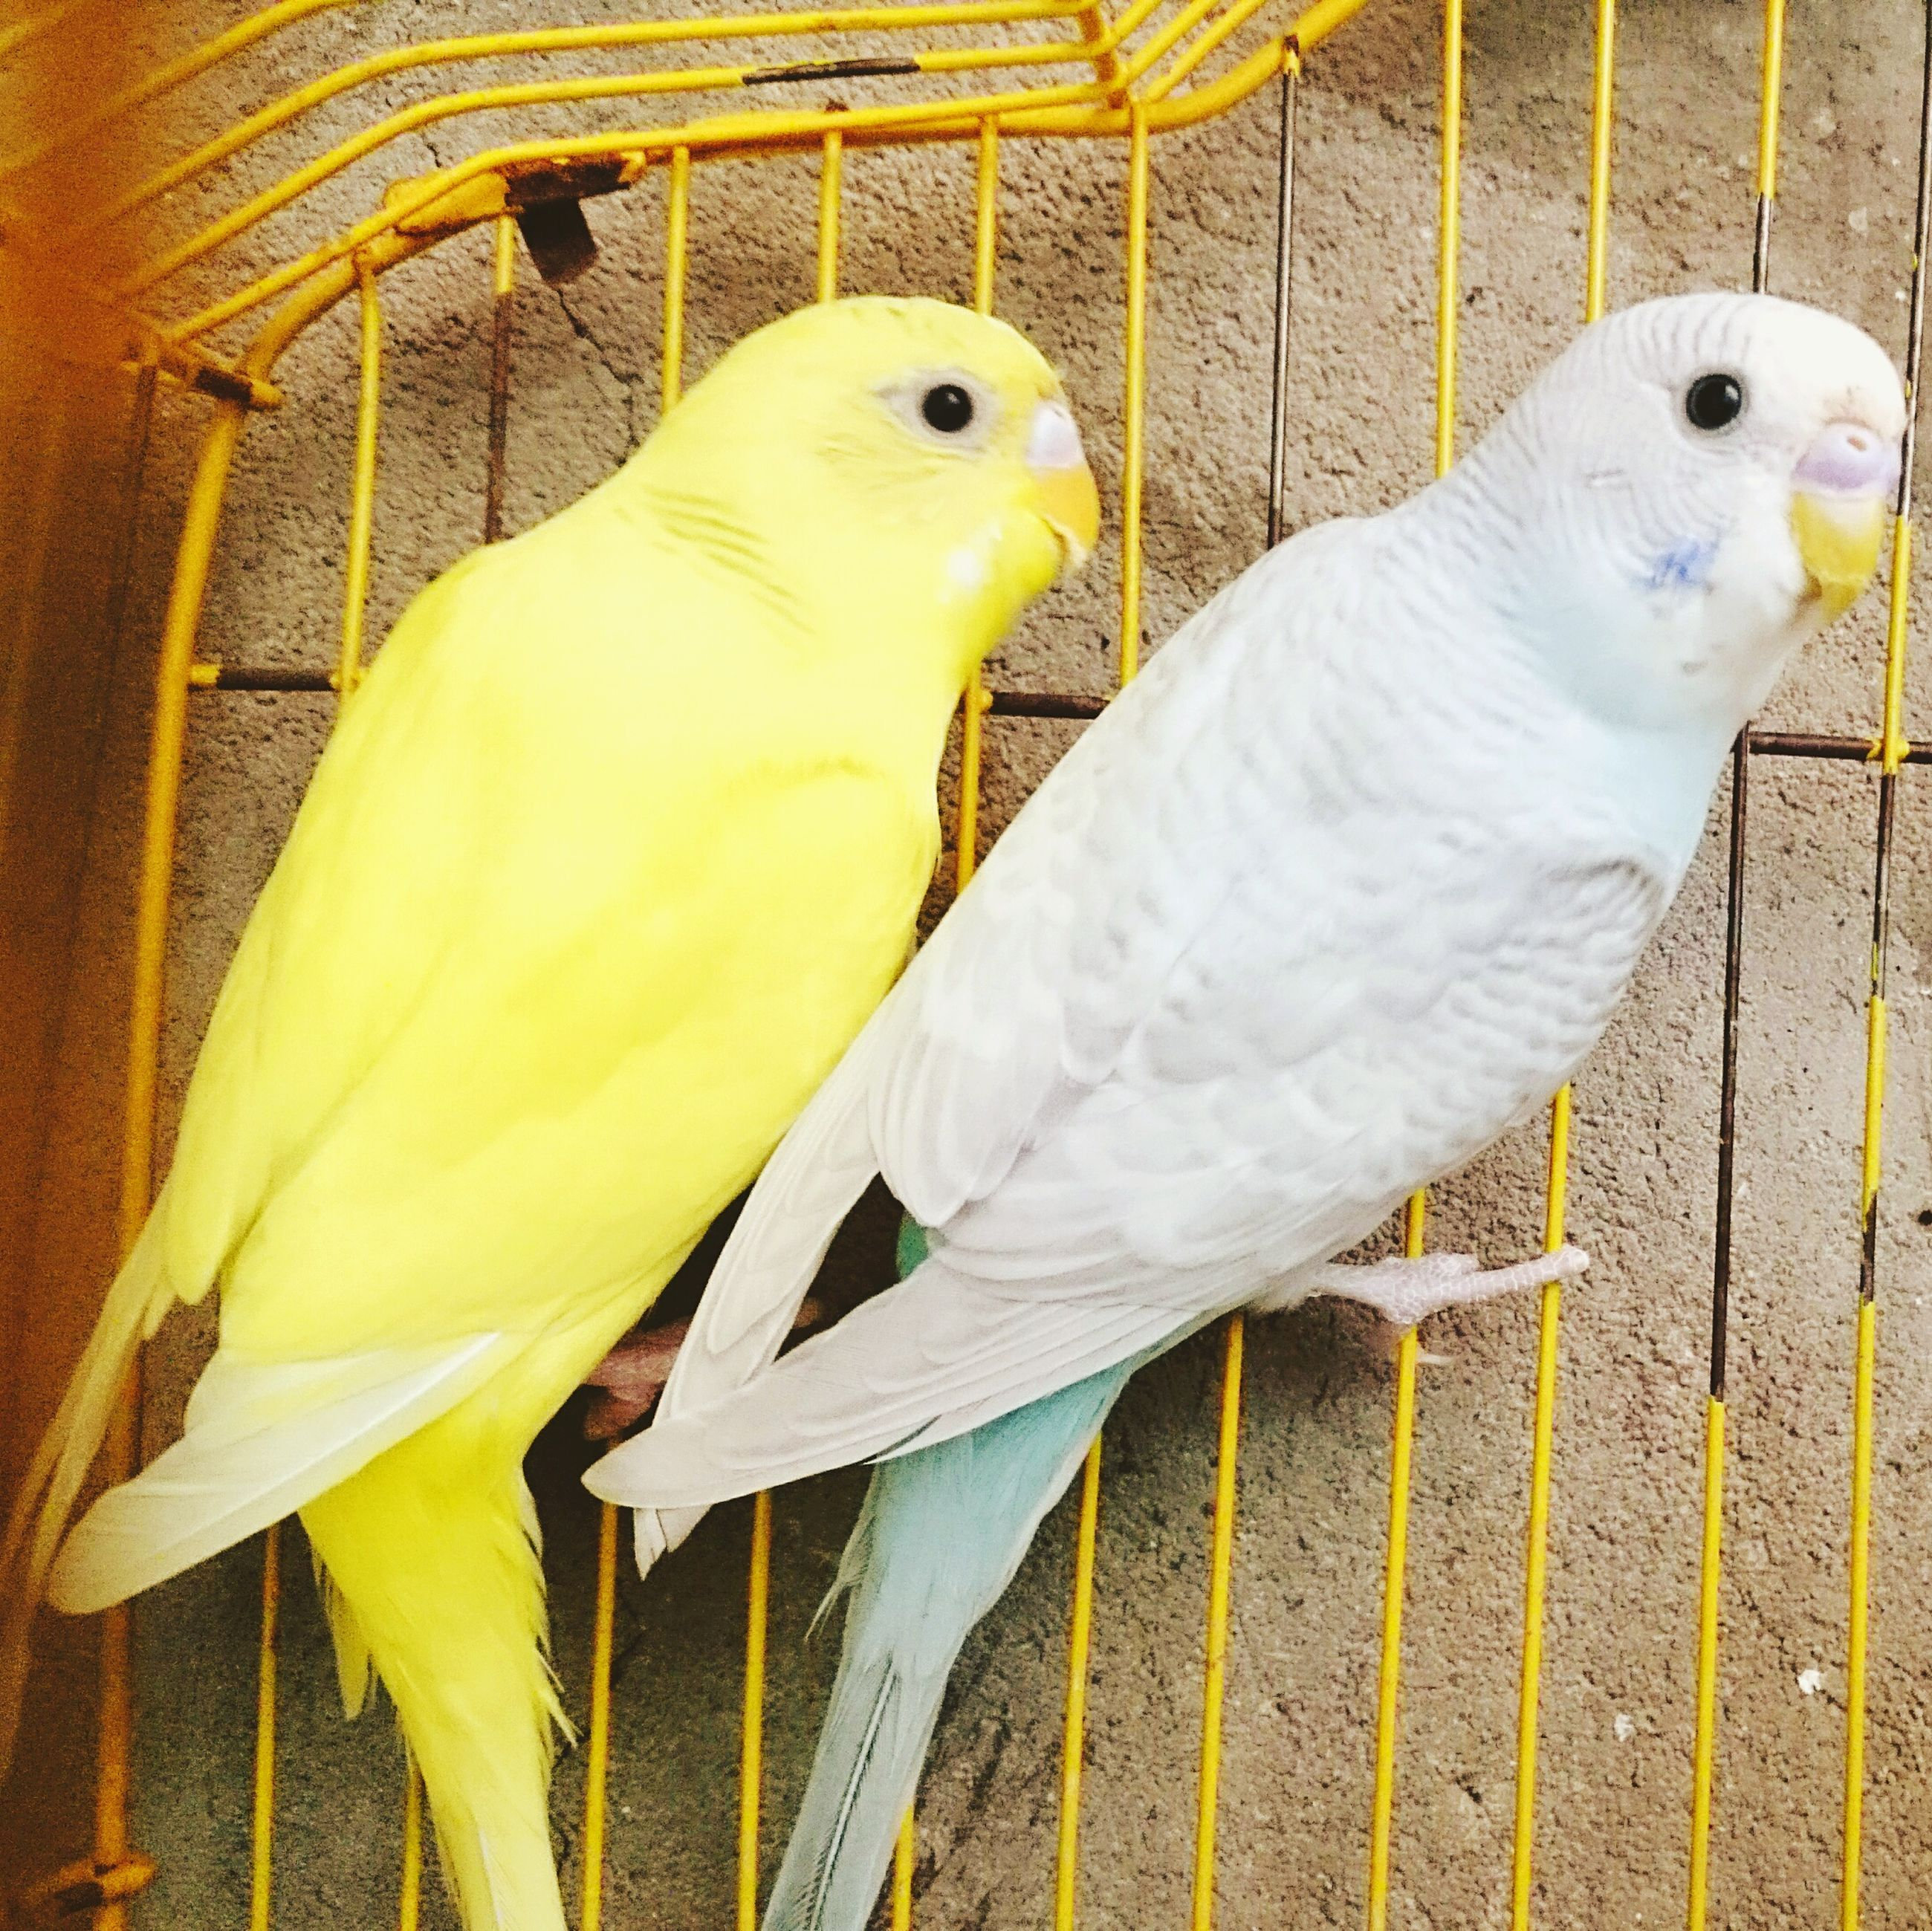 animal themes, bird, one animal, wildlife, animals in the wild, yellow, close-up, beak, white color, full length, side view, perching, vertebrate, zoology, parrot, nature, outdoors, animal head, day, no people